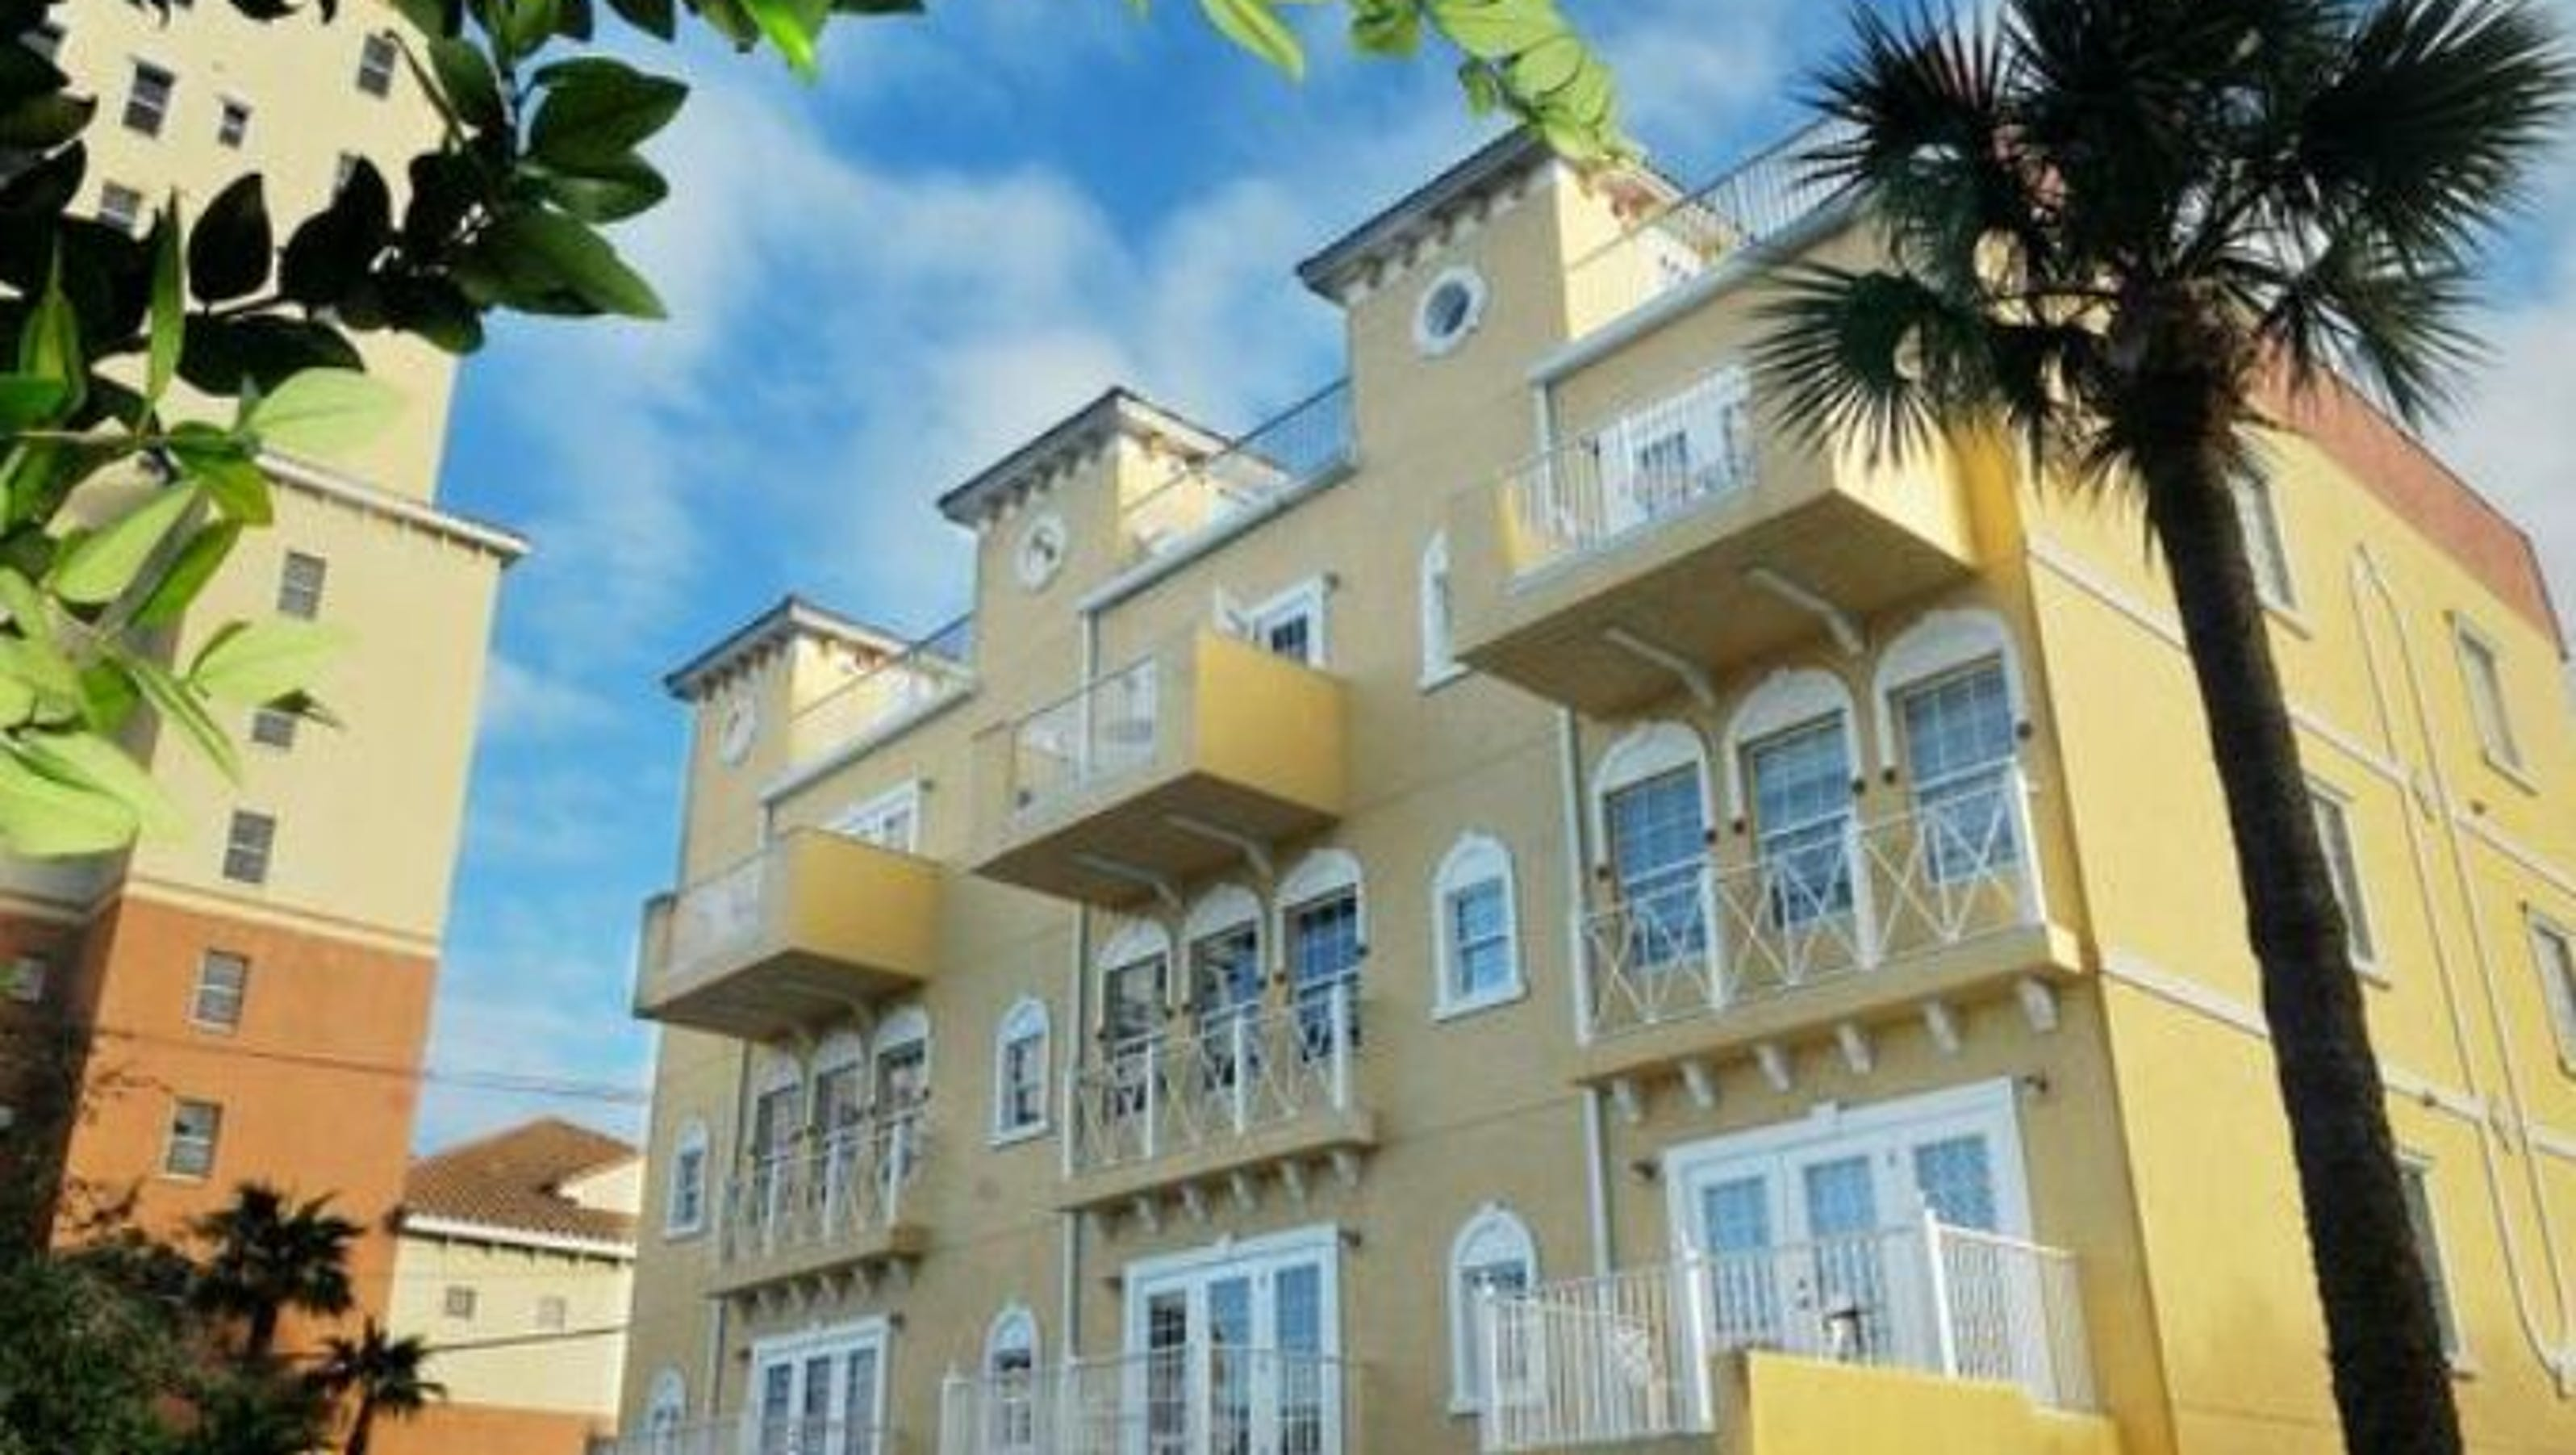 Townhomes bring european flair to cocoa village for European townhouse